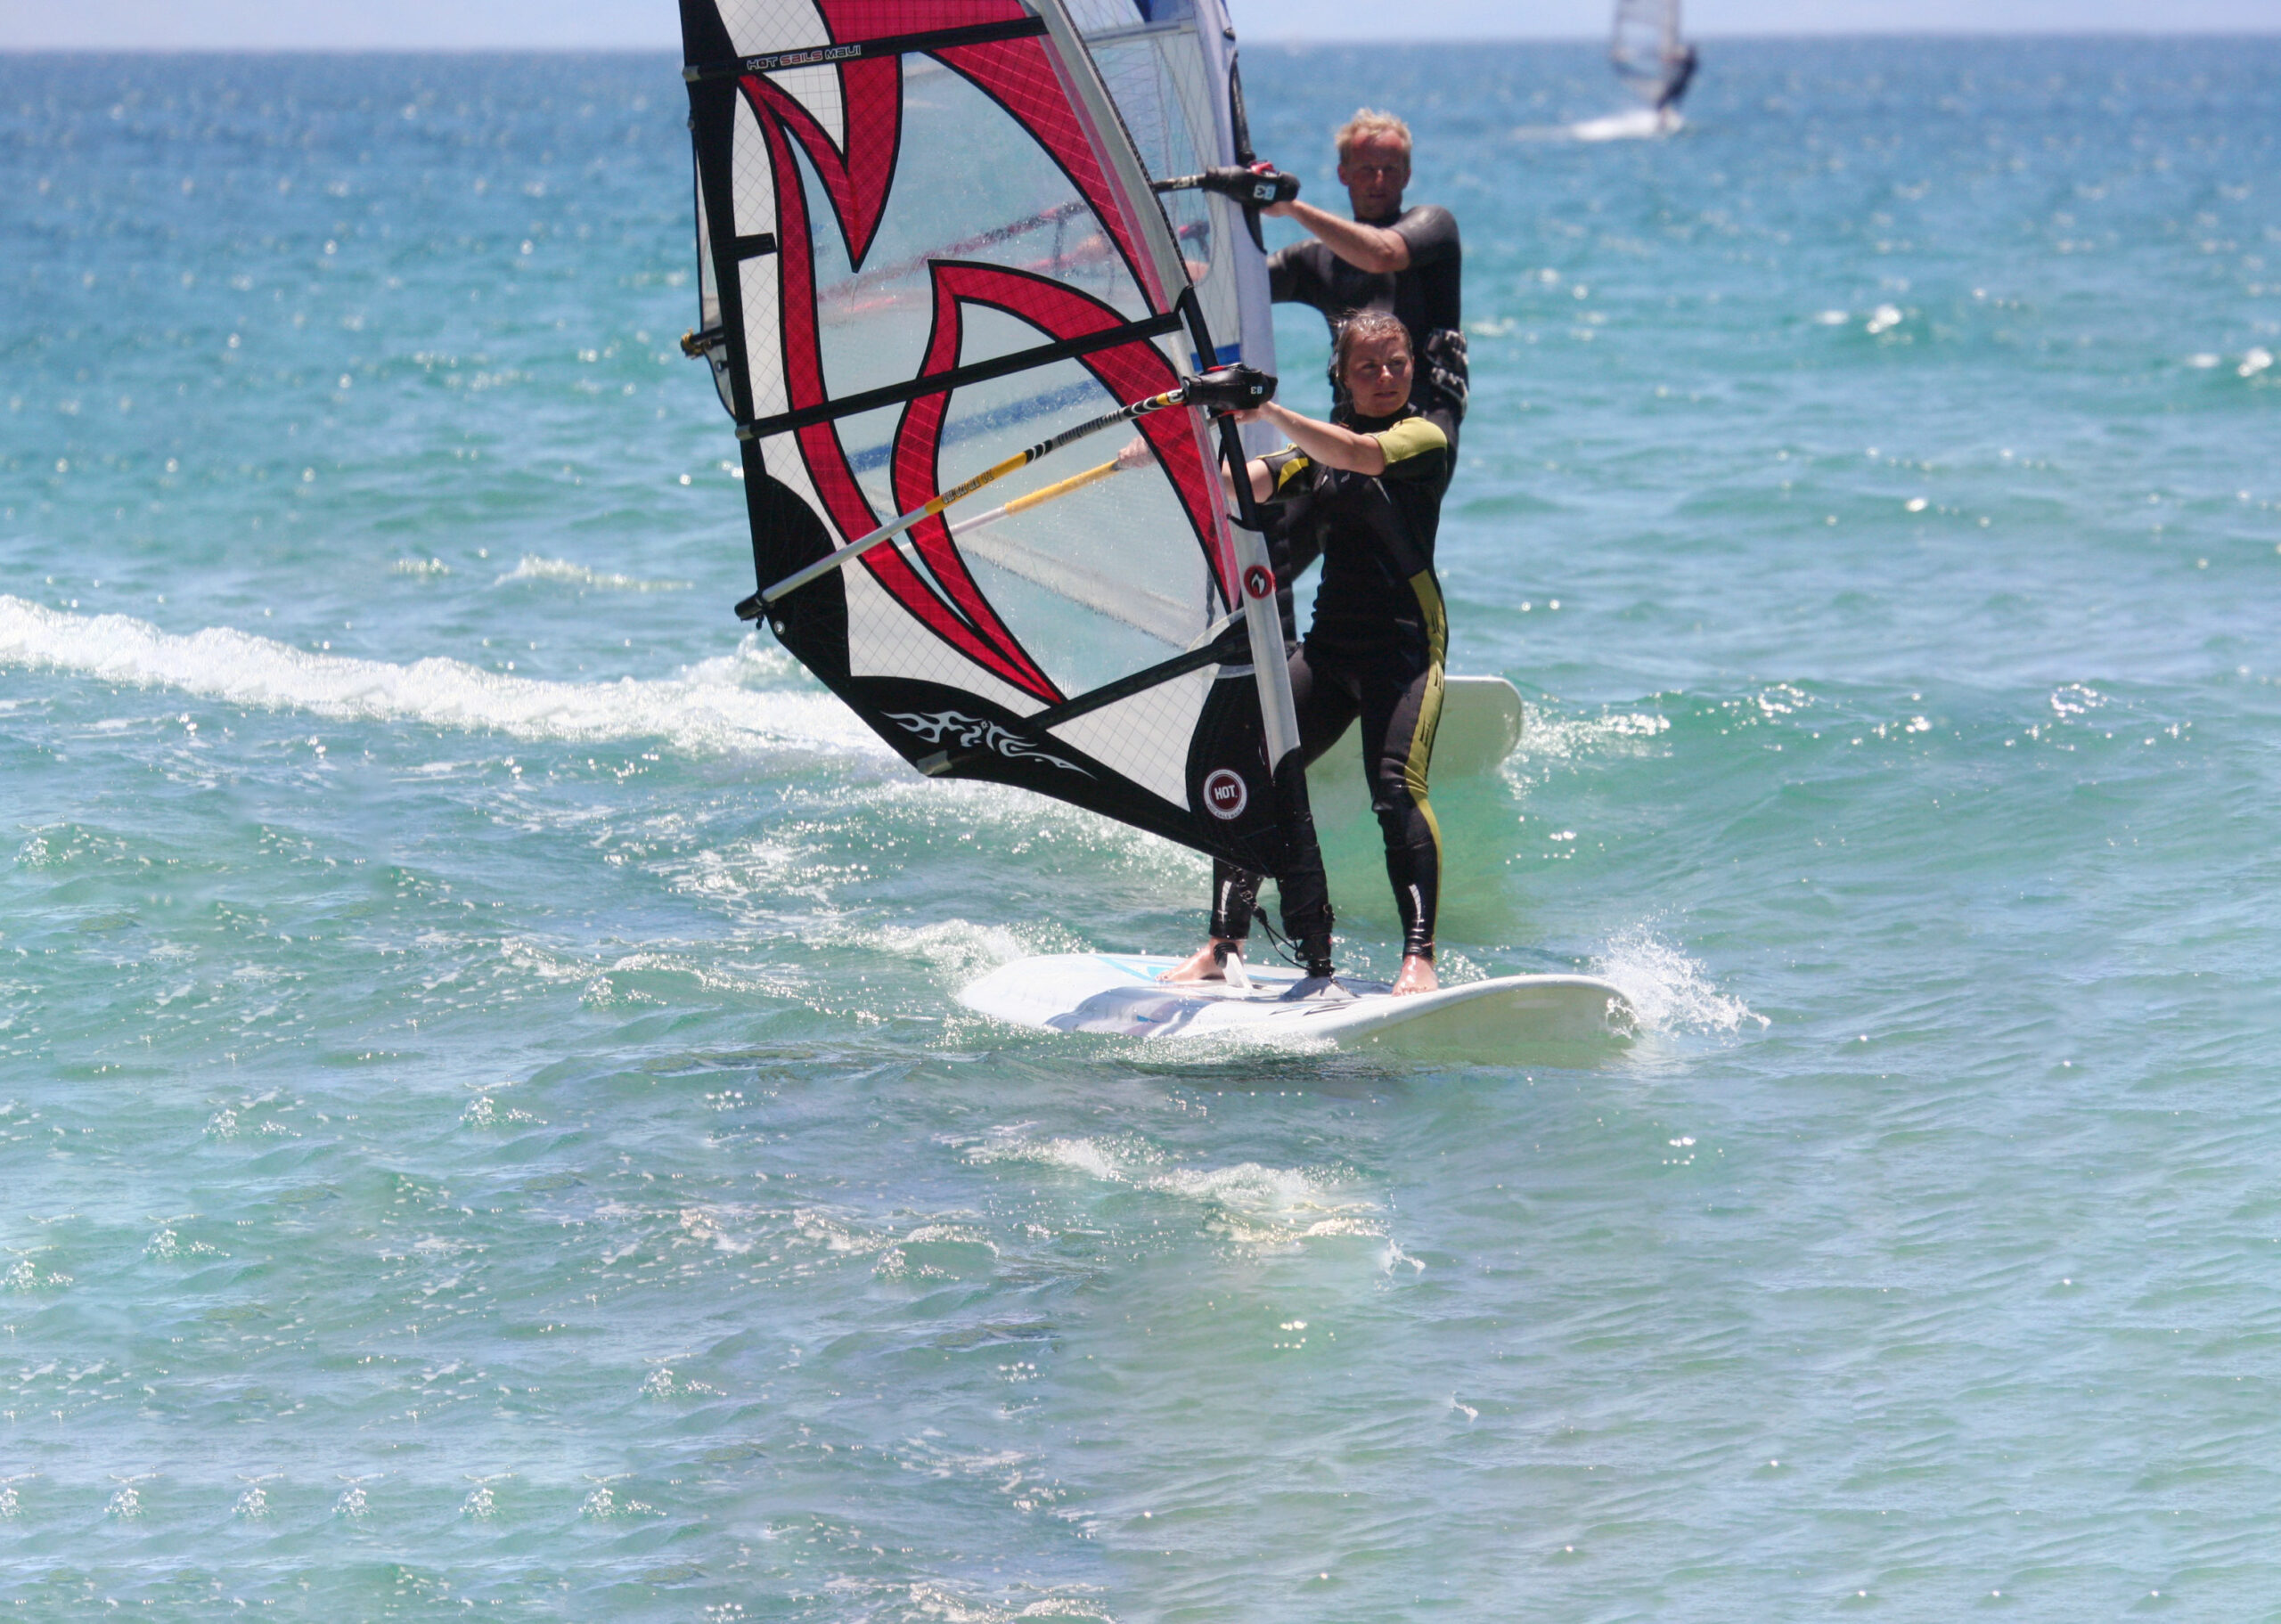 Enjoy windsurfing with us